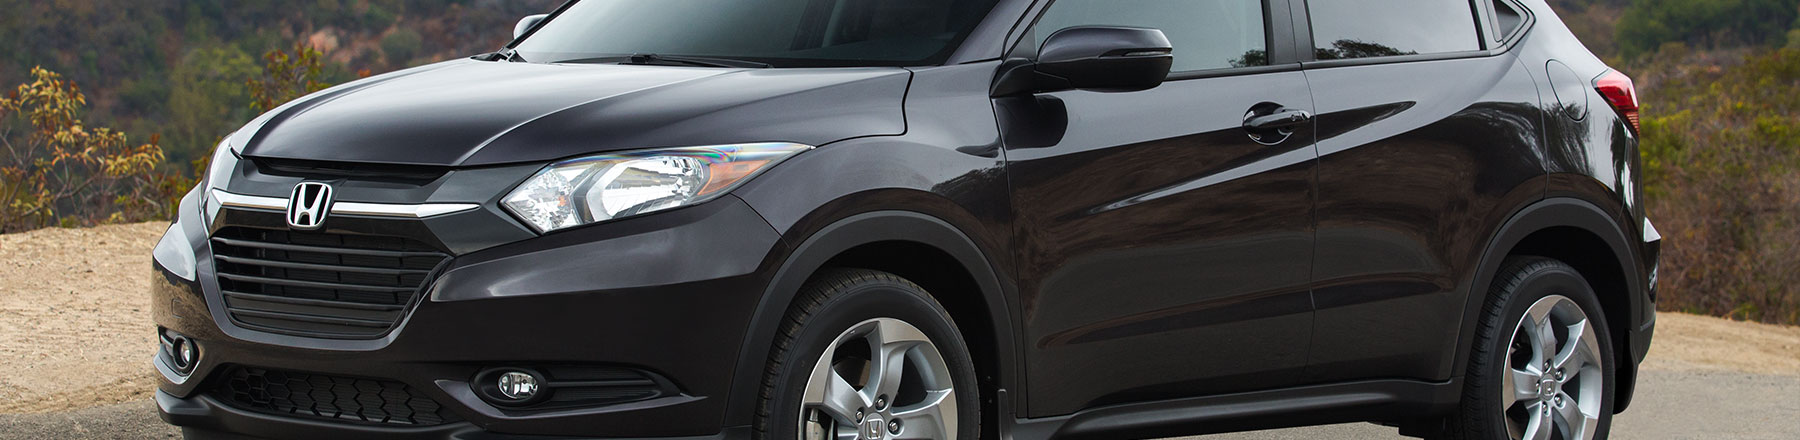 Learn about the all-new 2016 Honda HR-V crossover